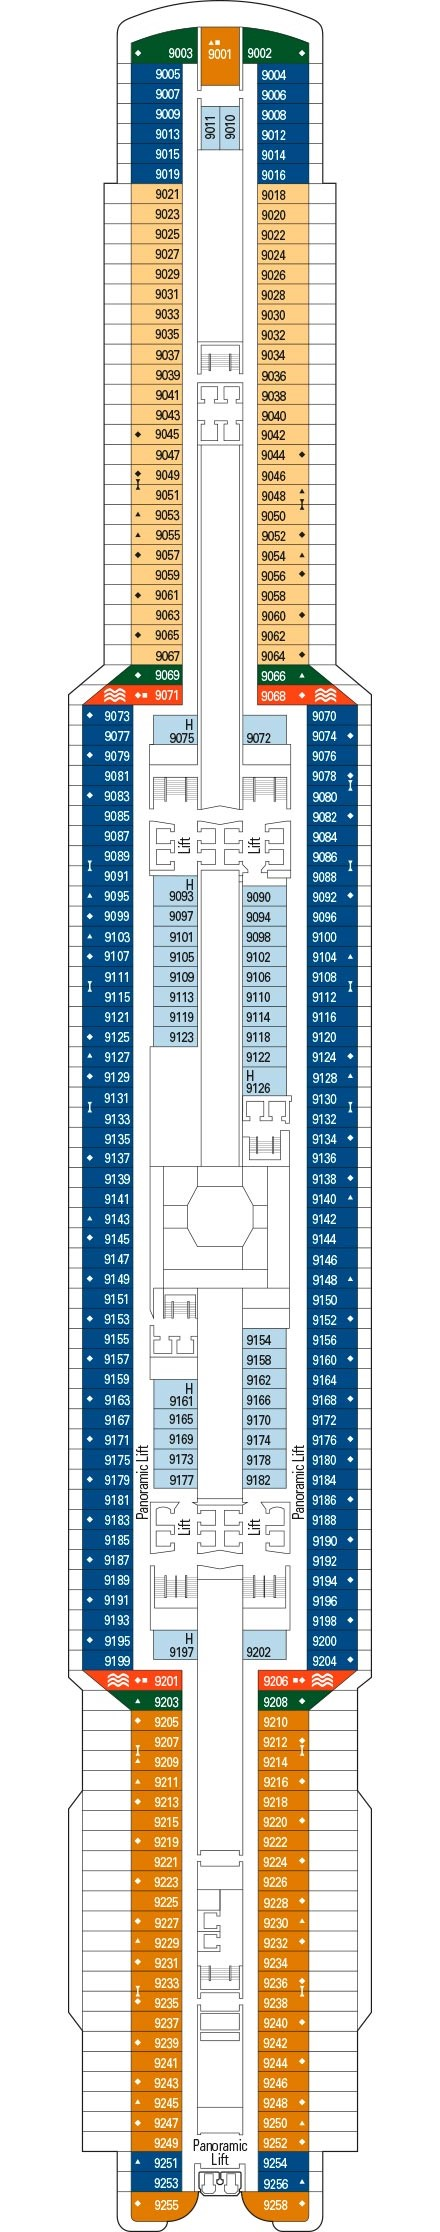 MSC Seaview Deck 9 layout